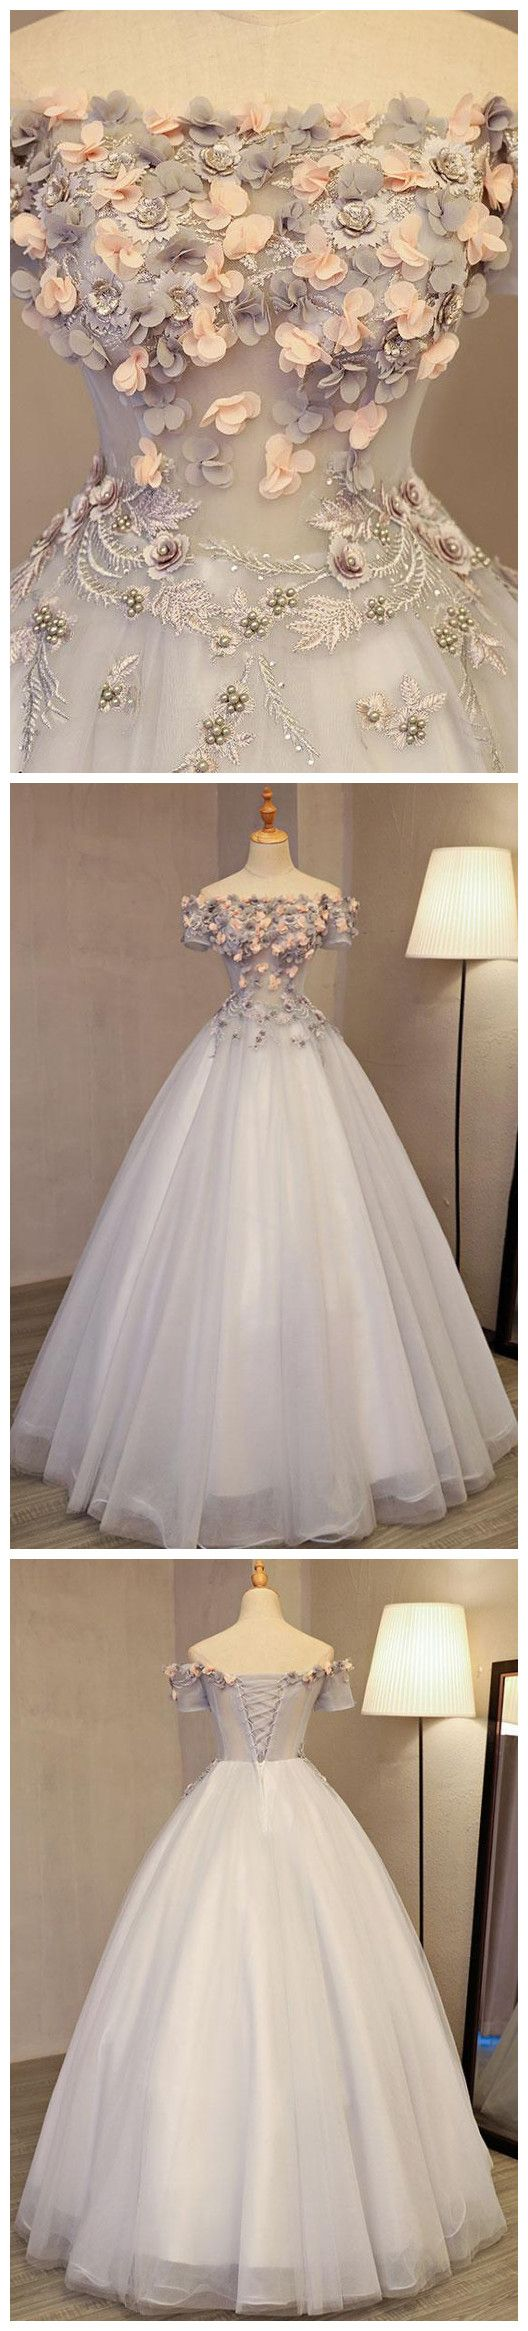 A-LINE OFF-THE-SHOULDER TULLE APPLIQUE CHIC LONG PROM DRESS EVENING DRESS AM685 #amyprom  #fashion #party #evening #chic #promdress #promdresslong #longpromdress #eveningdress  #gray